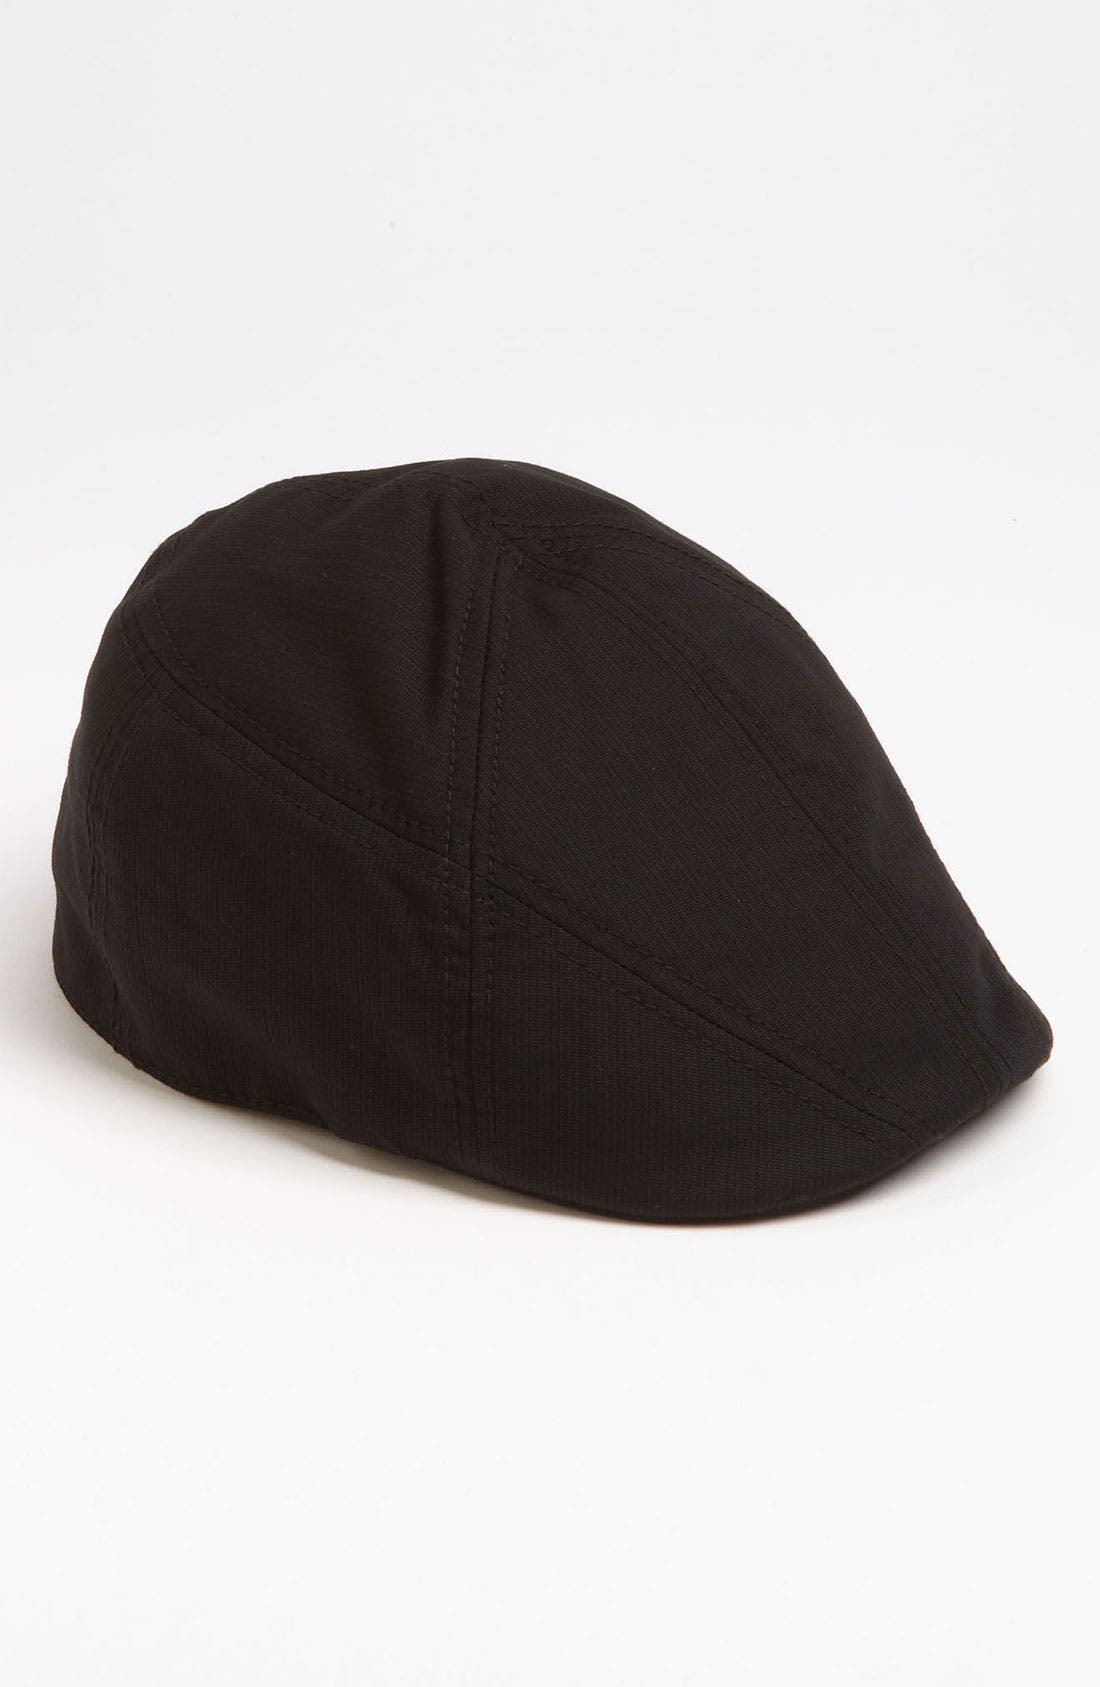 Main Image - Goorin Brothers Duckbill Driving Cap